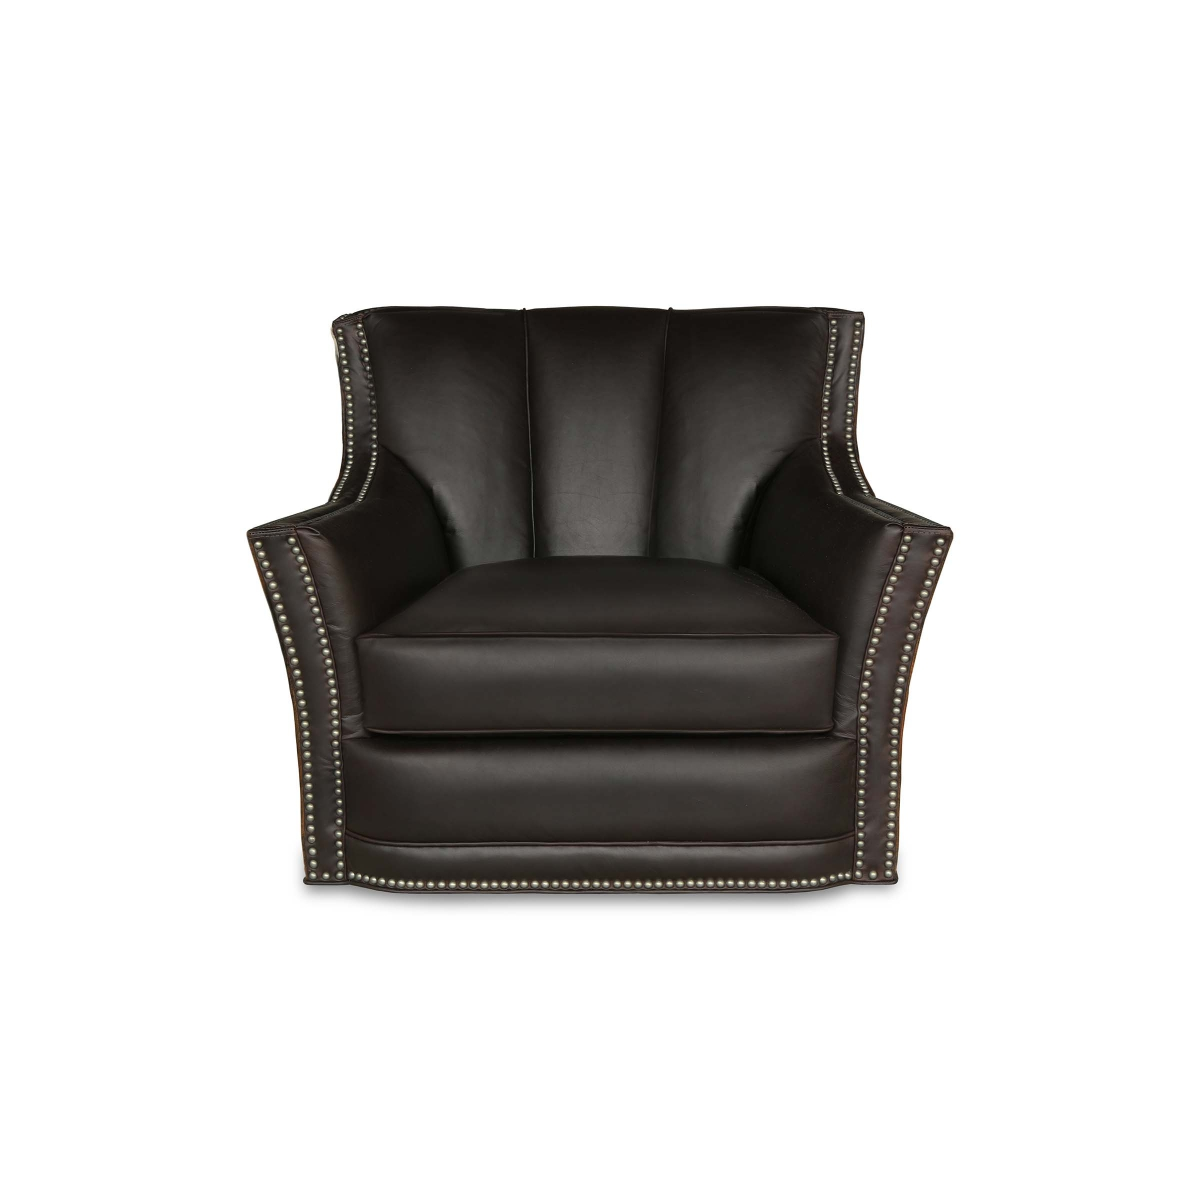 SOPHIA - 6A Swivel Chair Stonewood Coal